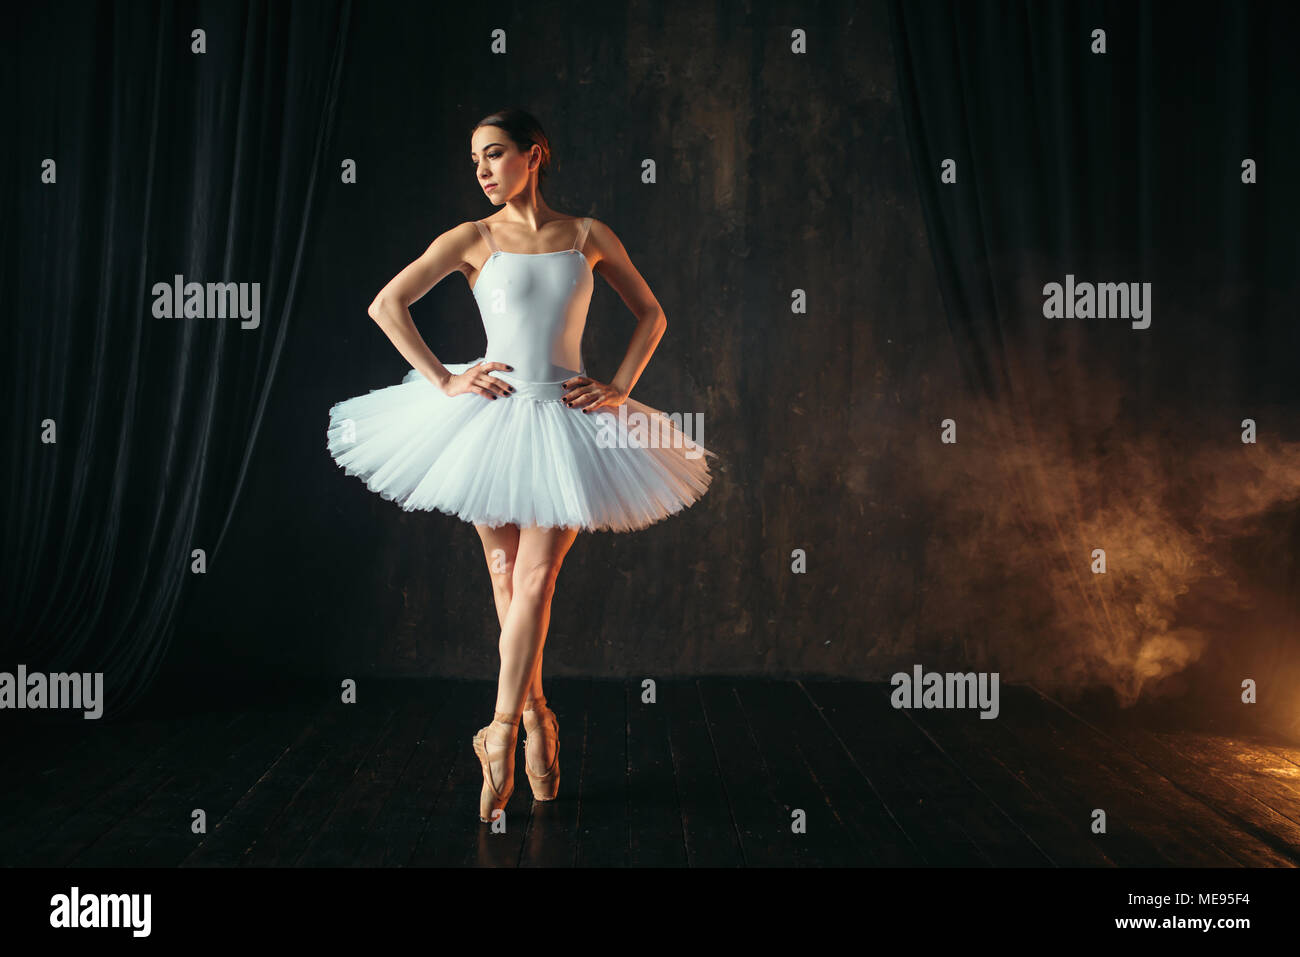 Elegance ballerina in white dress and pointe shoes dancing on theatrical stage. Classical ballet dancer training in class - Stock Image